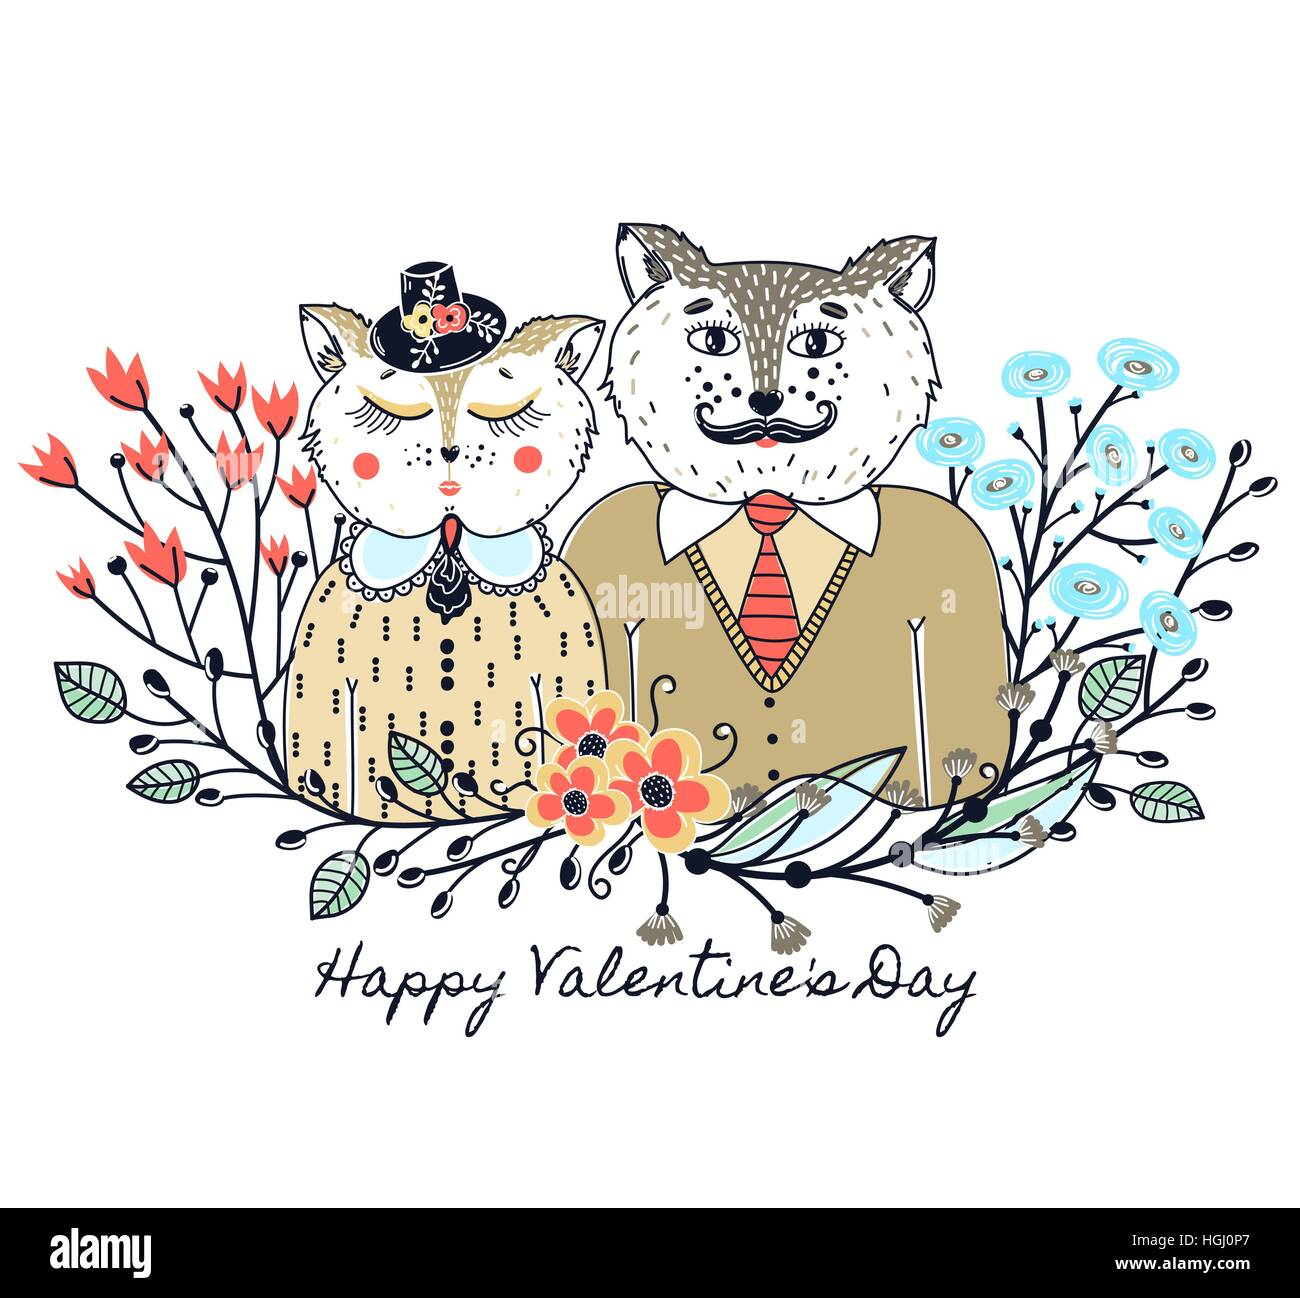 enamoured cats greeting background on valentine u0027s day feast of